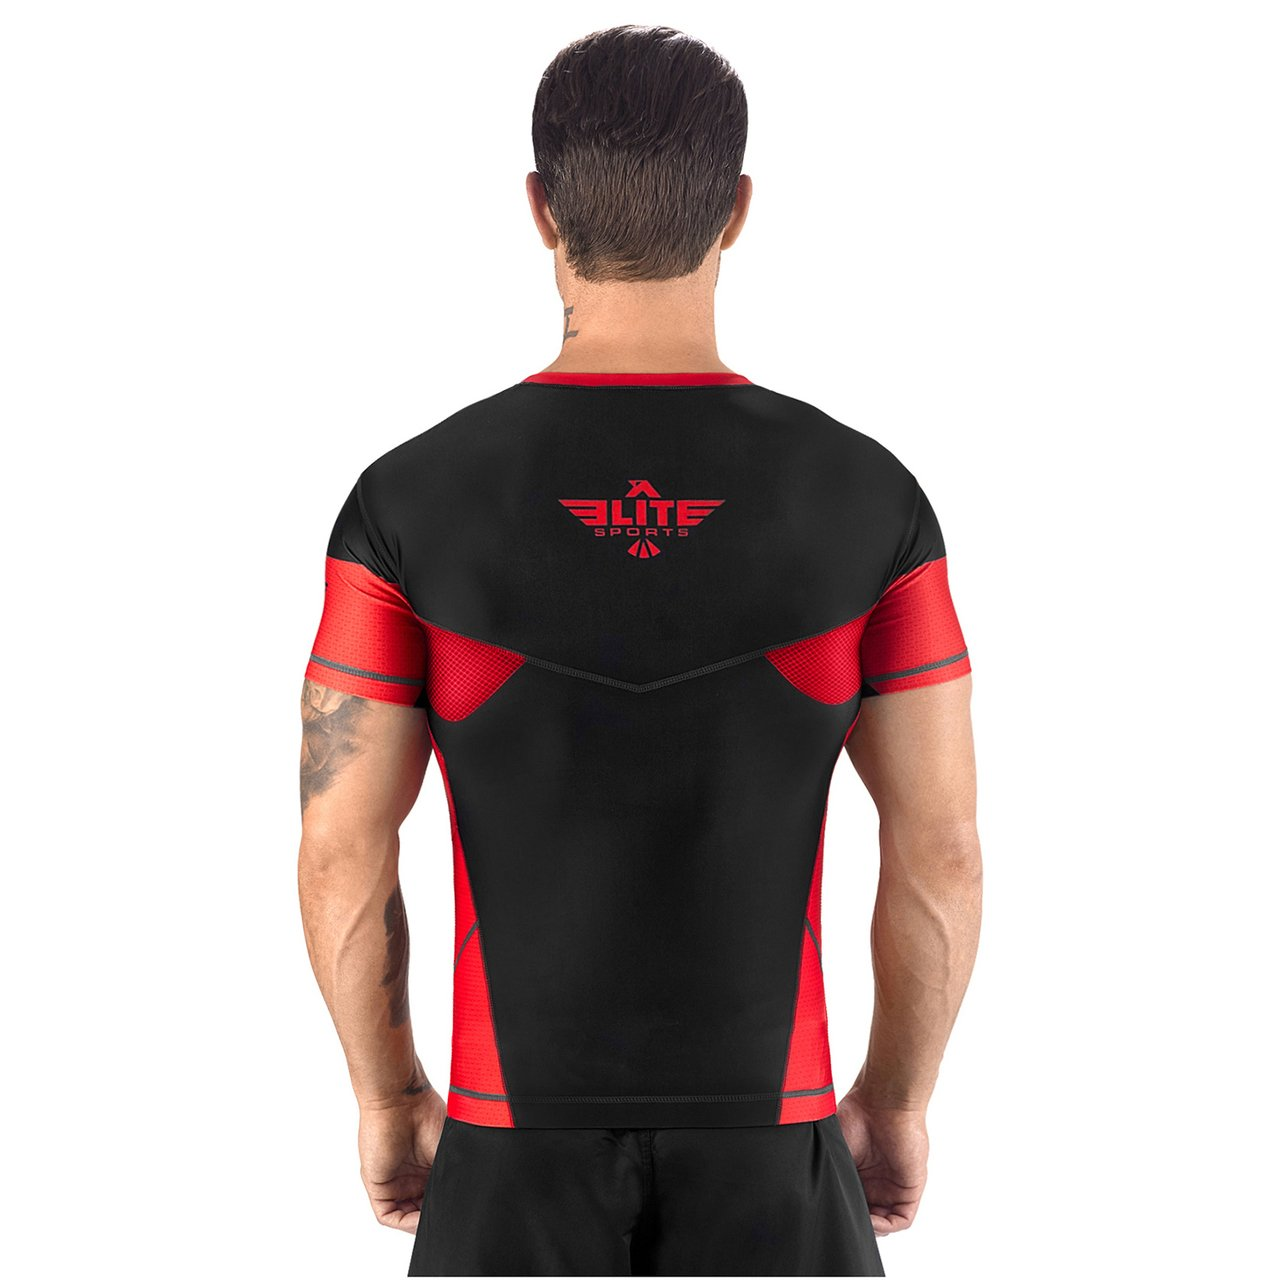 Load image into Gallery viewer, Elite Sports Honey Comb Sublimation Black/Red Short Sleeve MMA Rash Guard